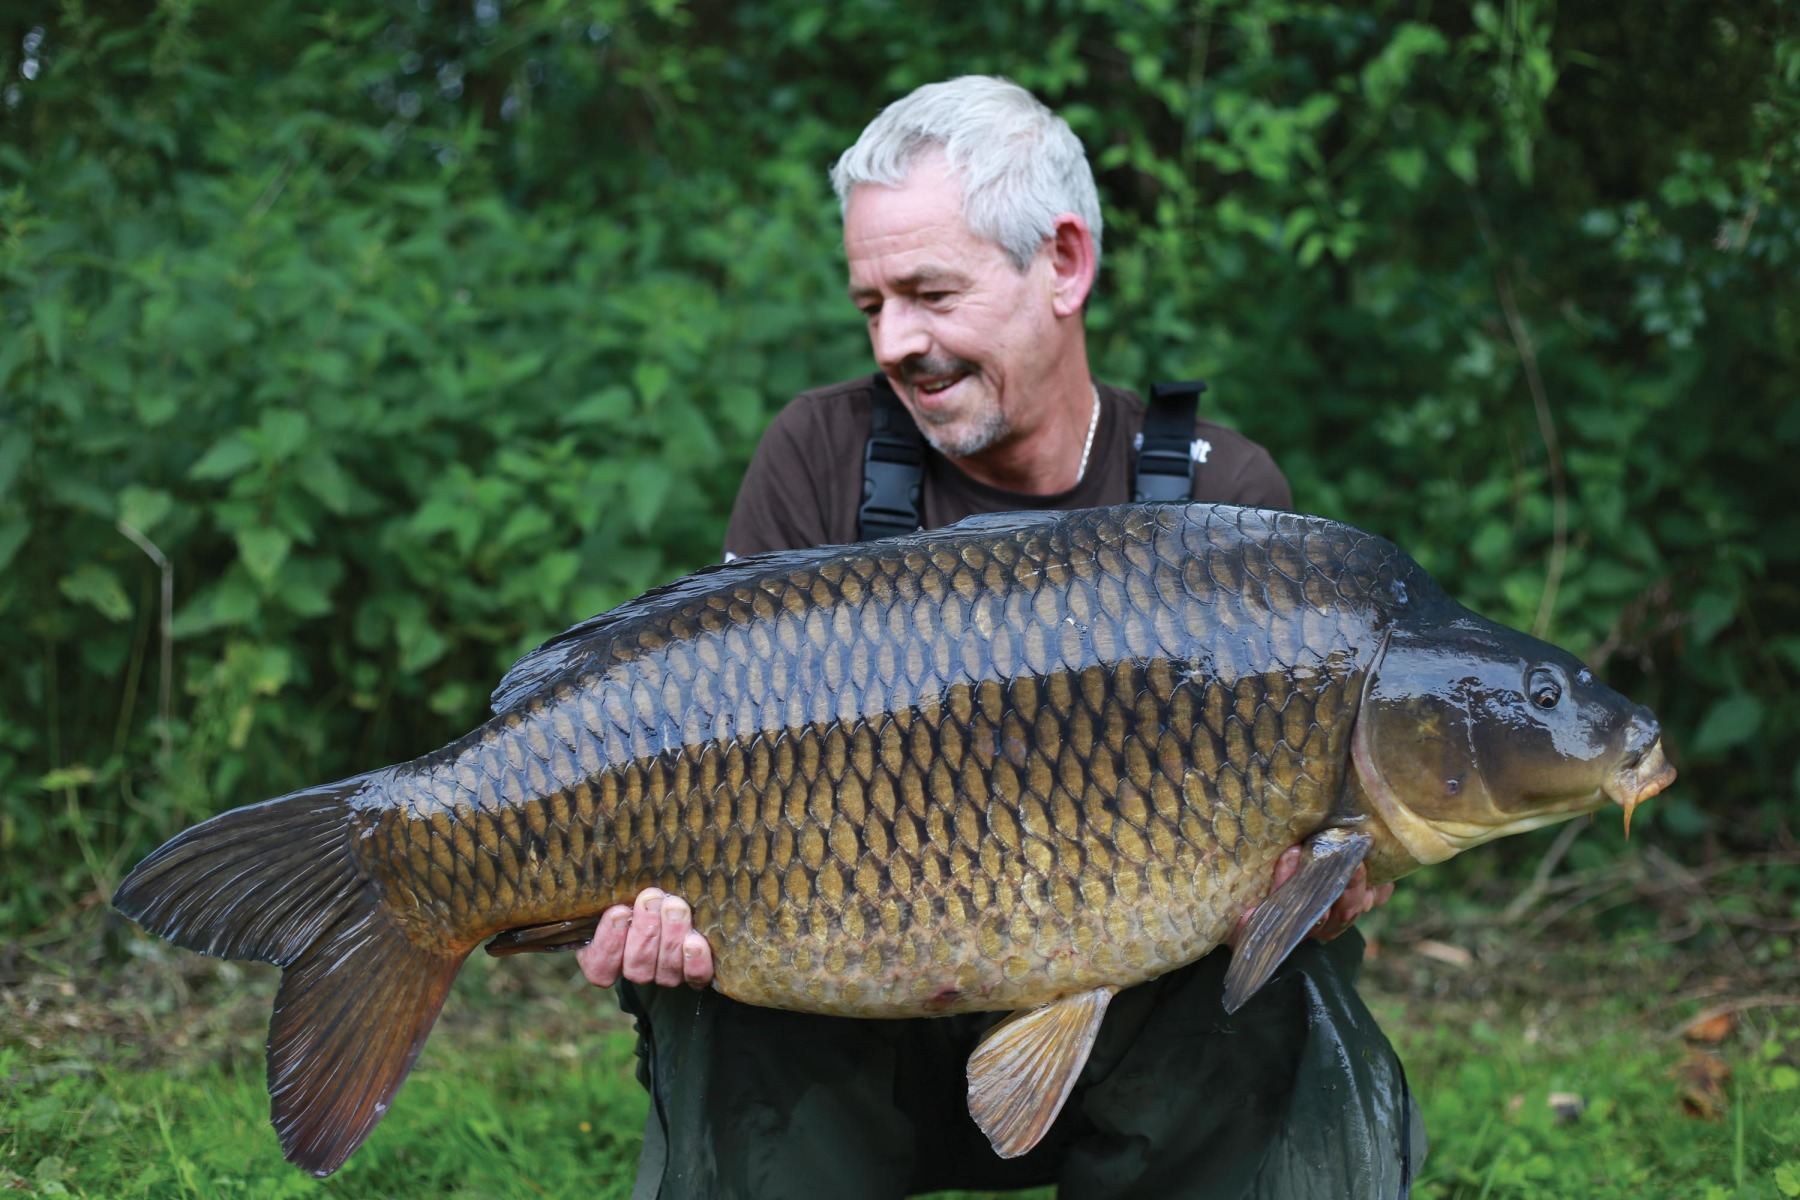 Spencer's first trip to Belgium with the Trig-Hammers and they helped account for this 40+ common